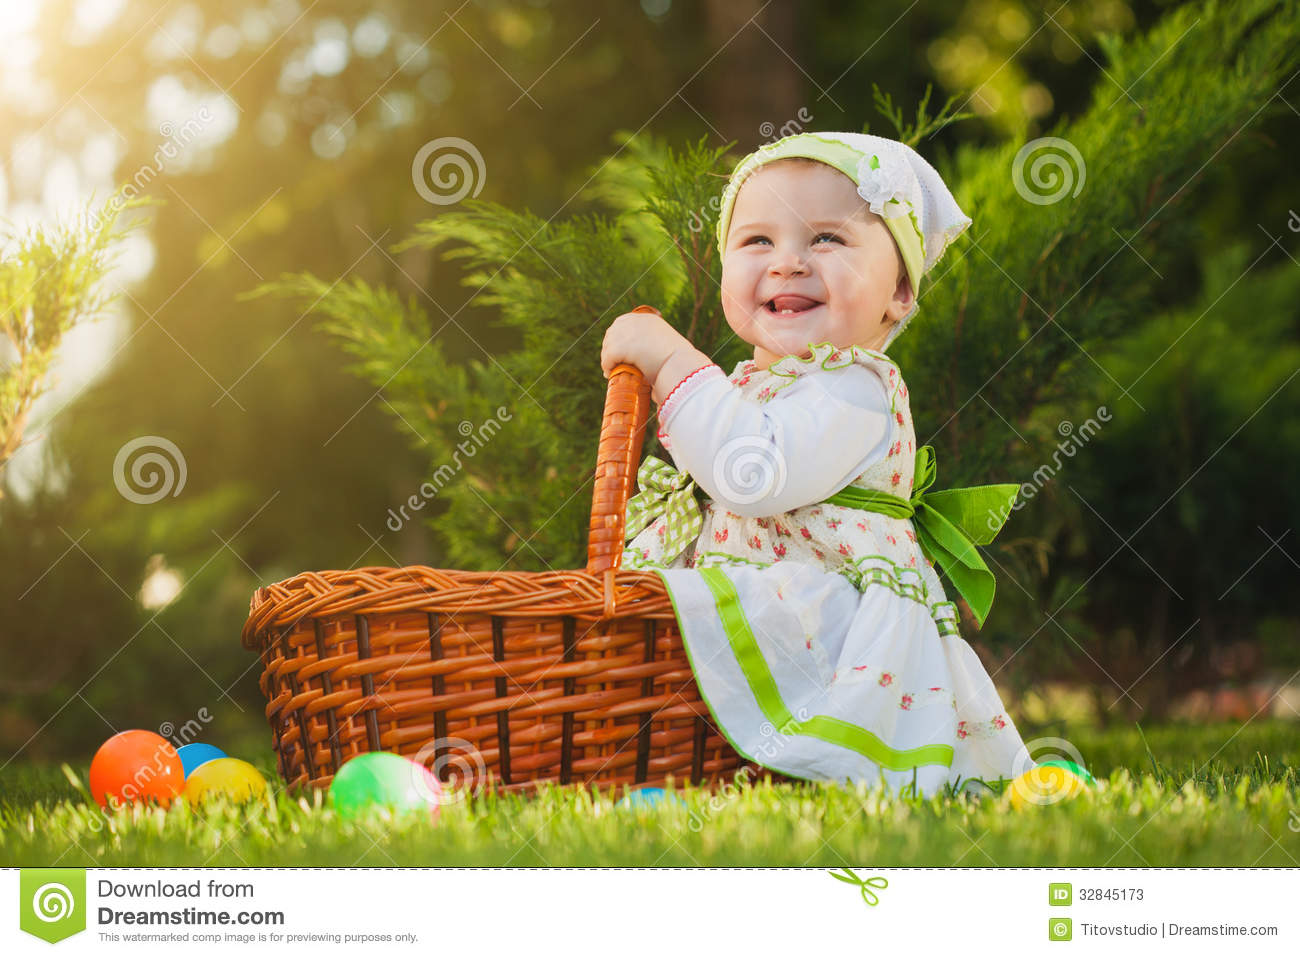 Image result for baby in park